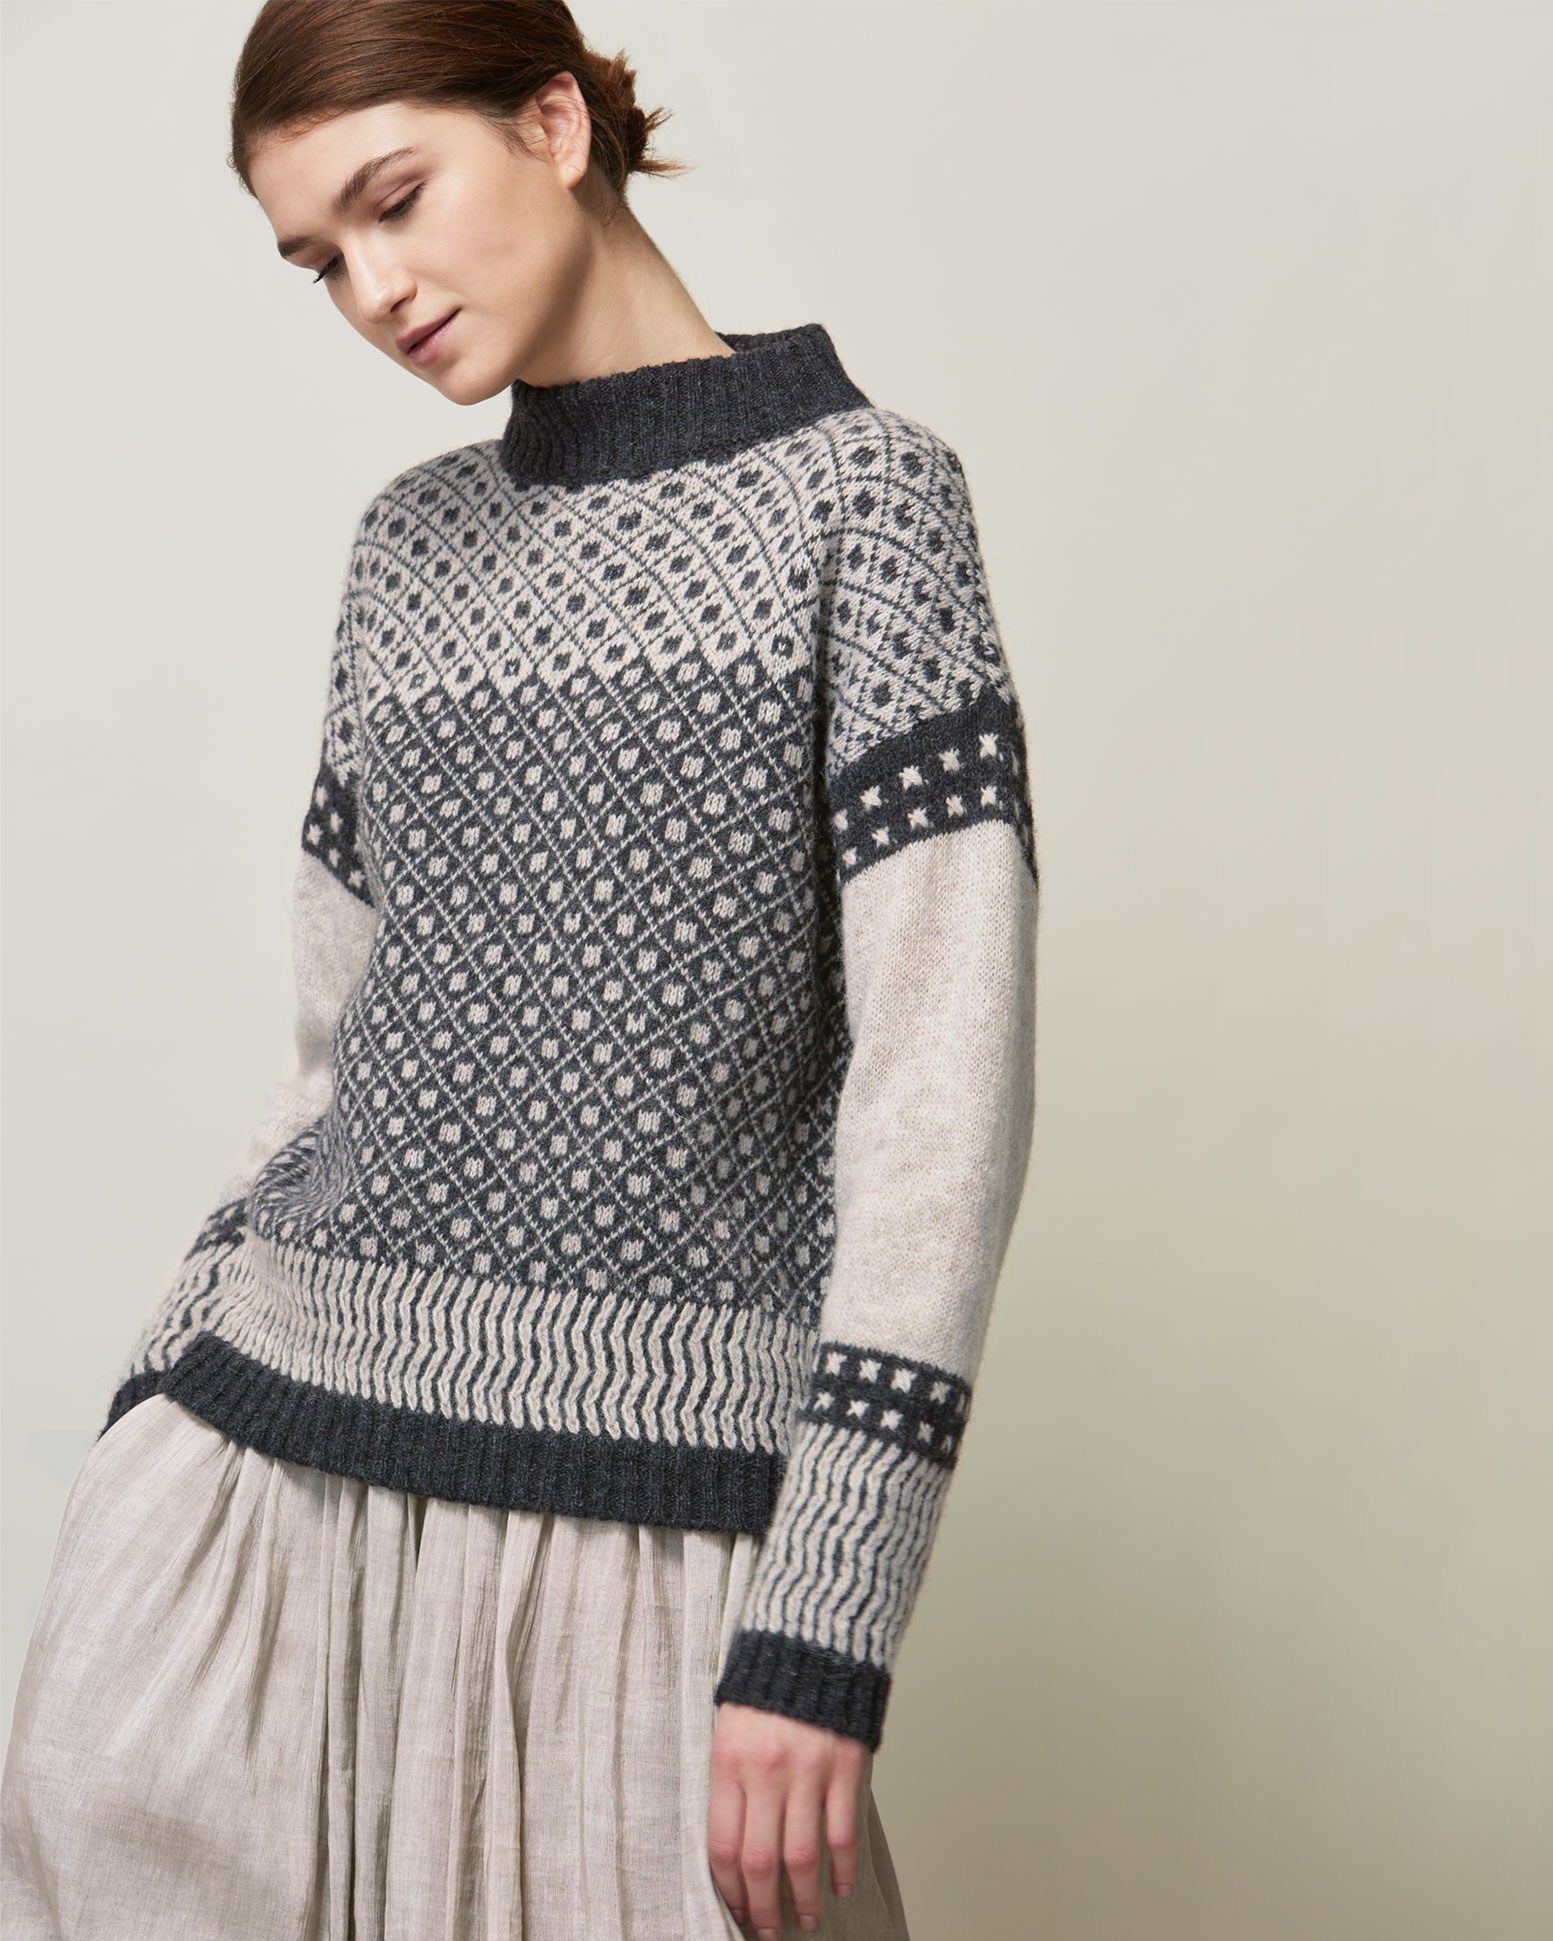 Slouchy Fair Isle pullover in a warm, traditionally spun lambswool ...